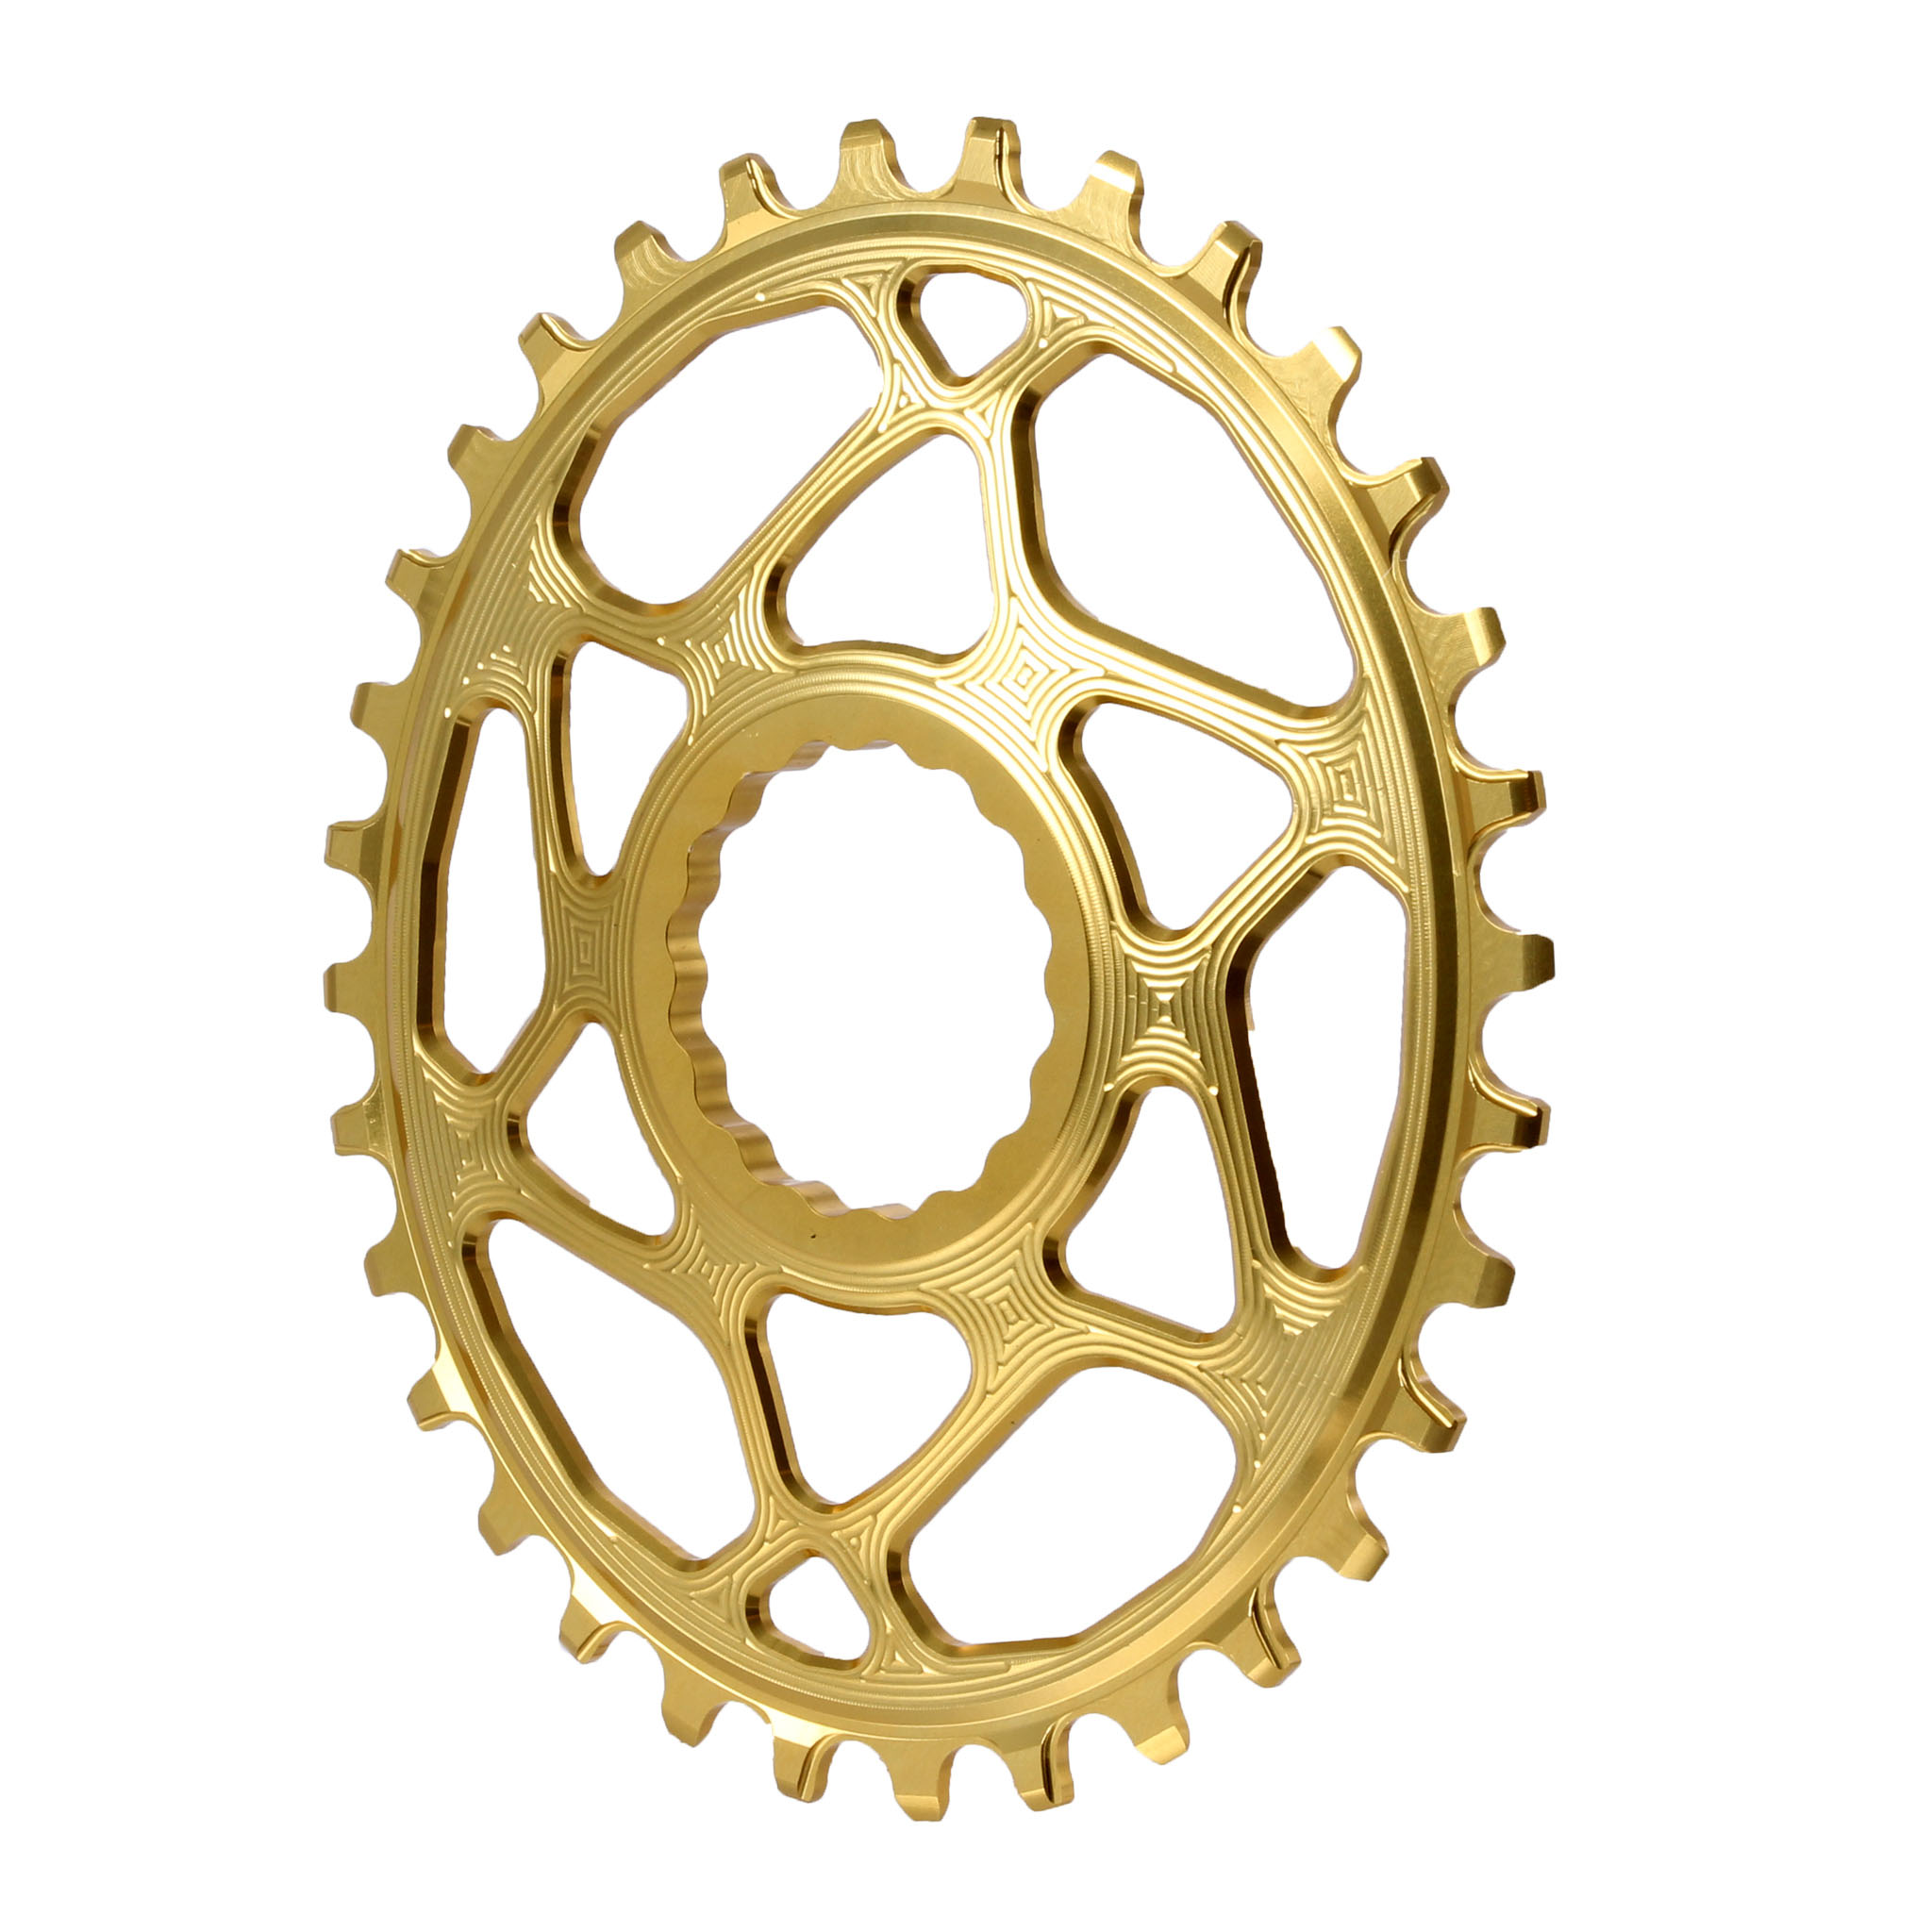 Spiderless Cinch DM Oval Boost Chainring, 32T - gold